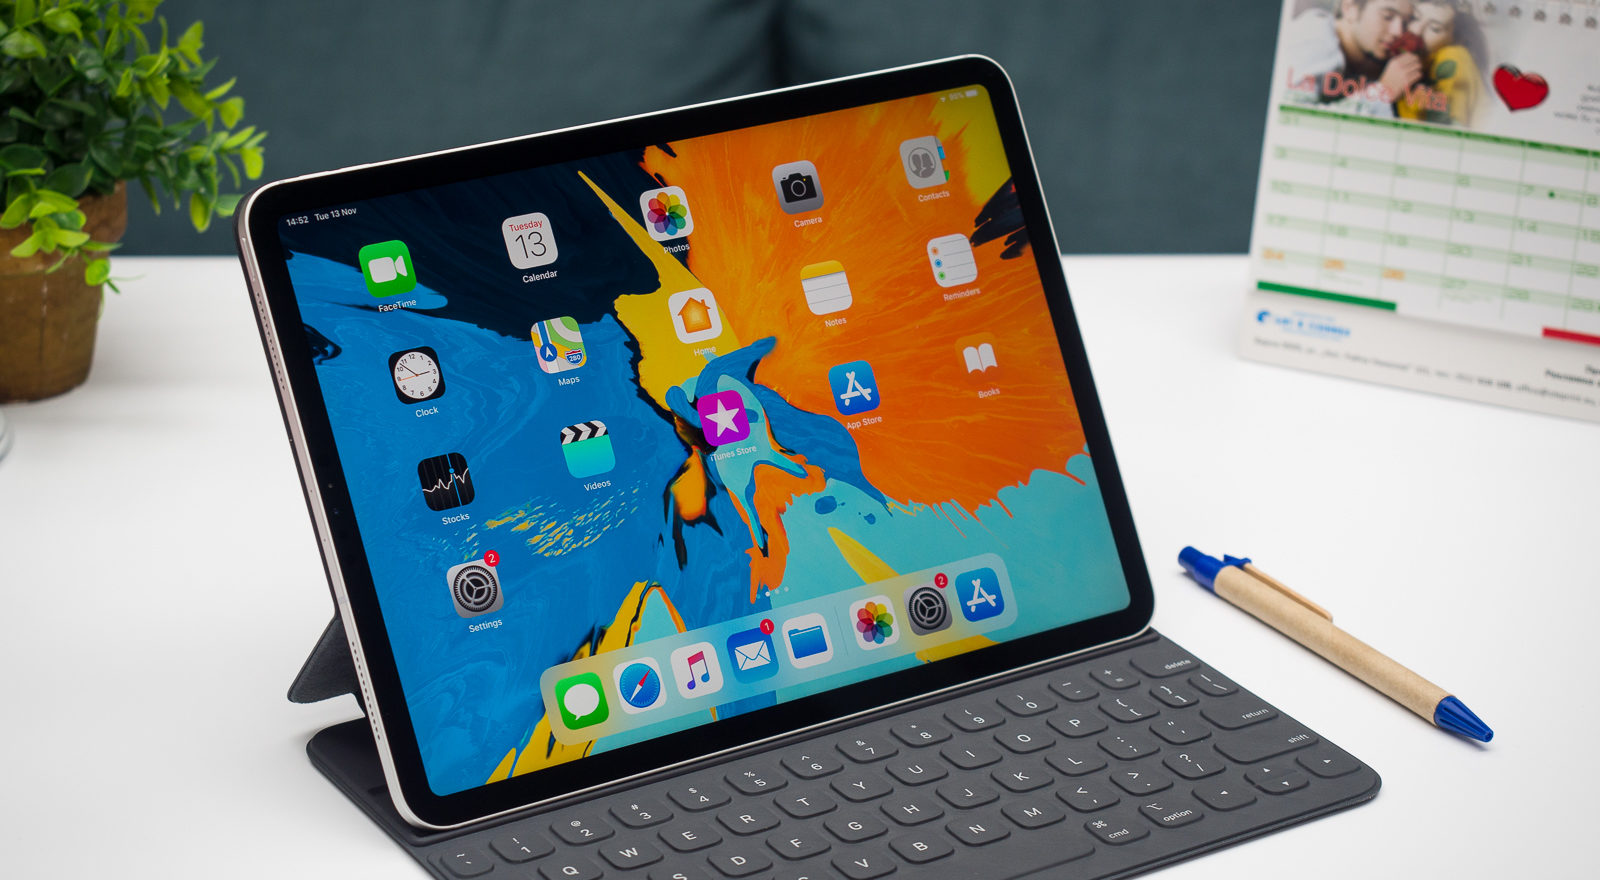 Apple iPad Pro 2020 Release Date, Specs, Price 5G Support, miniLED Display and Triple Rear Camera